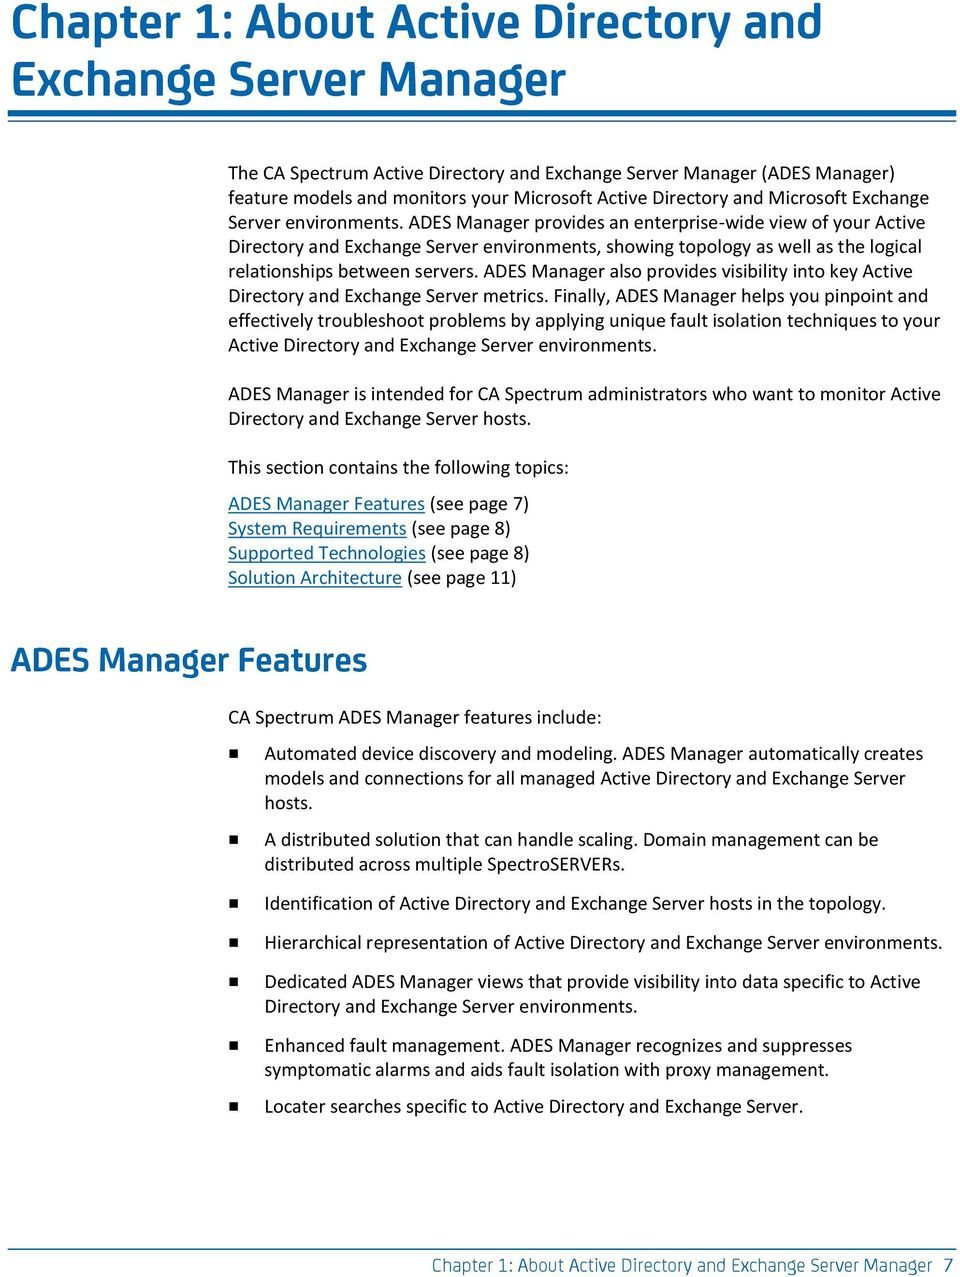 ADES Manager provides an enterprise-wide view of your Active Directory and Exchange Server environments, showing topology as well as the logical relationships between servers.